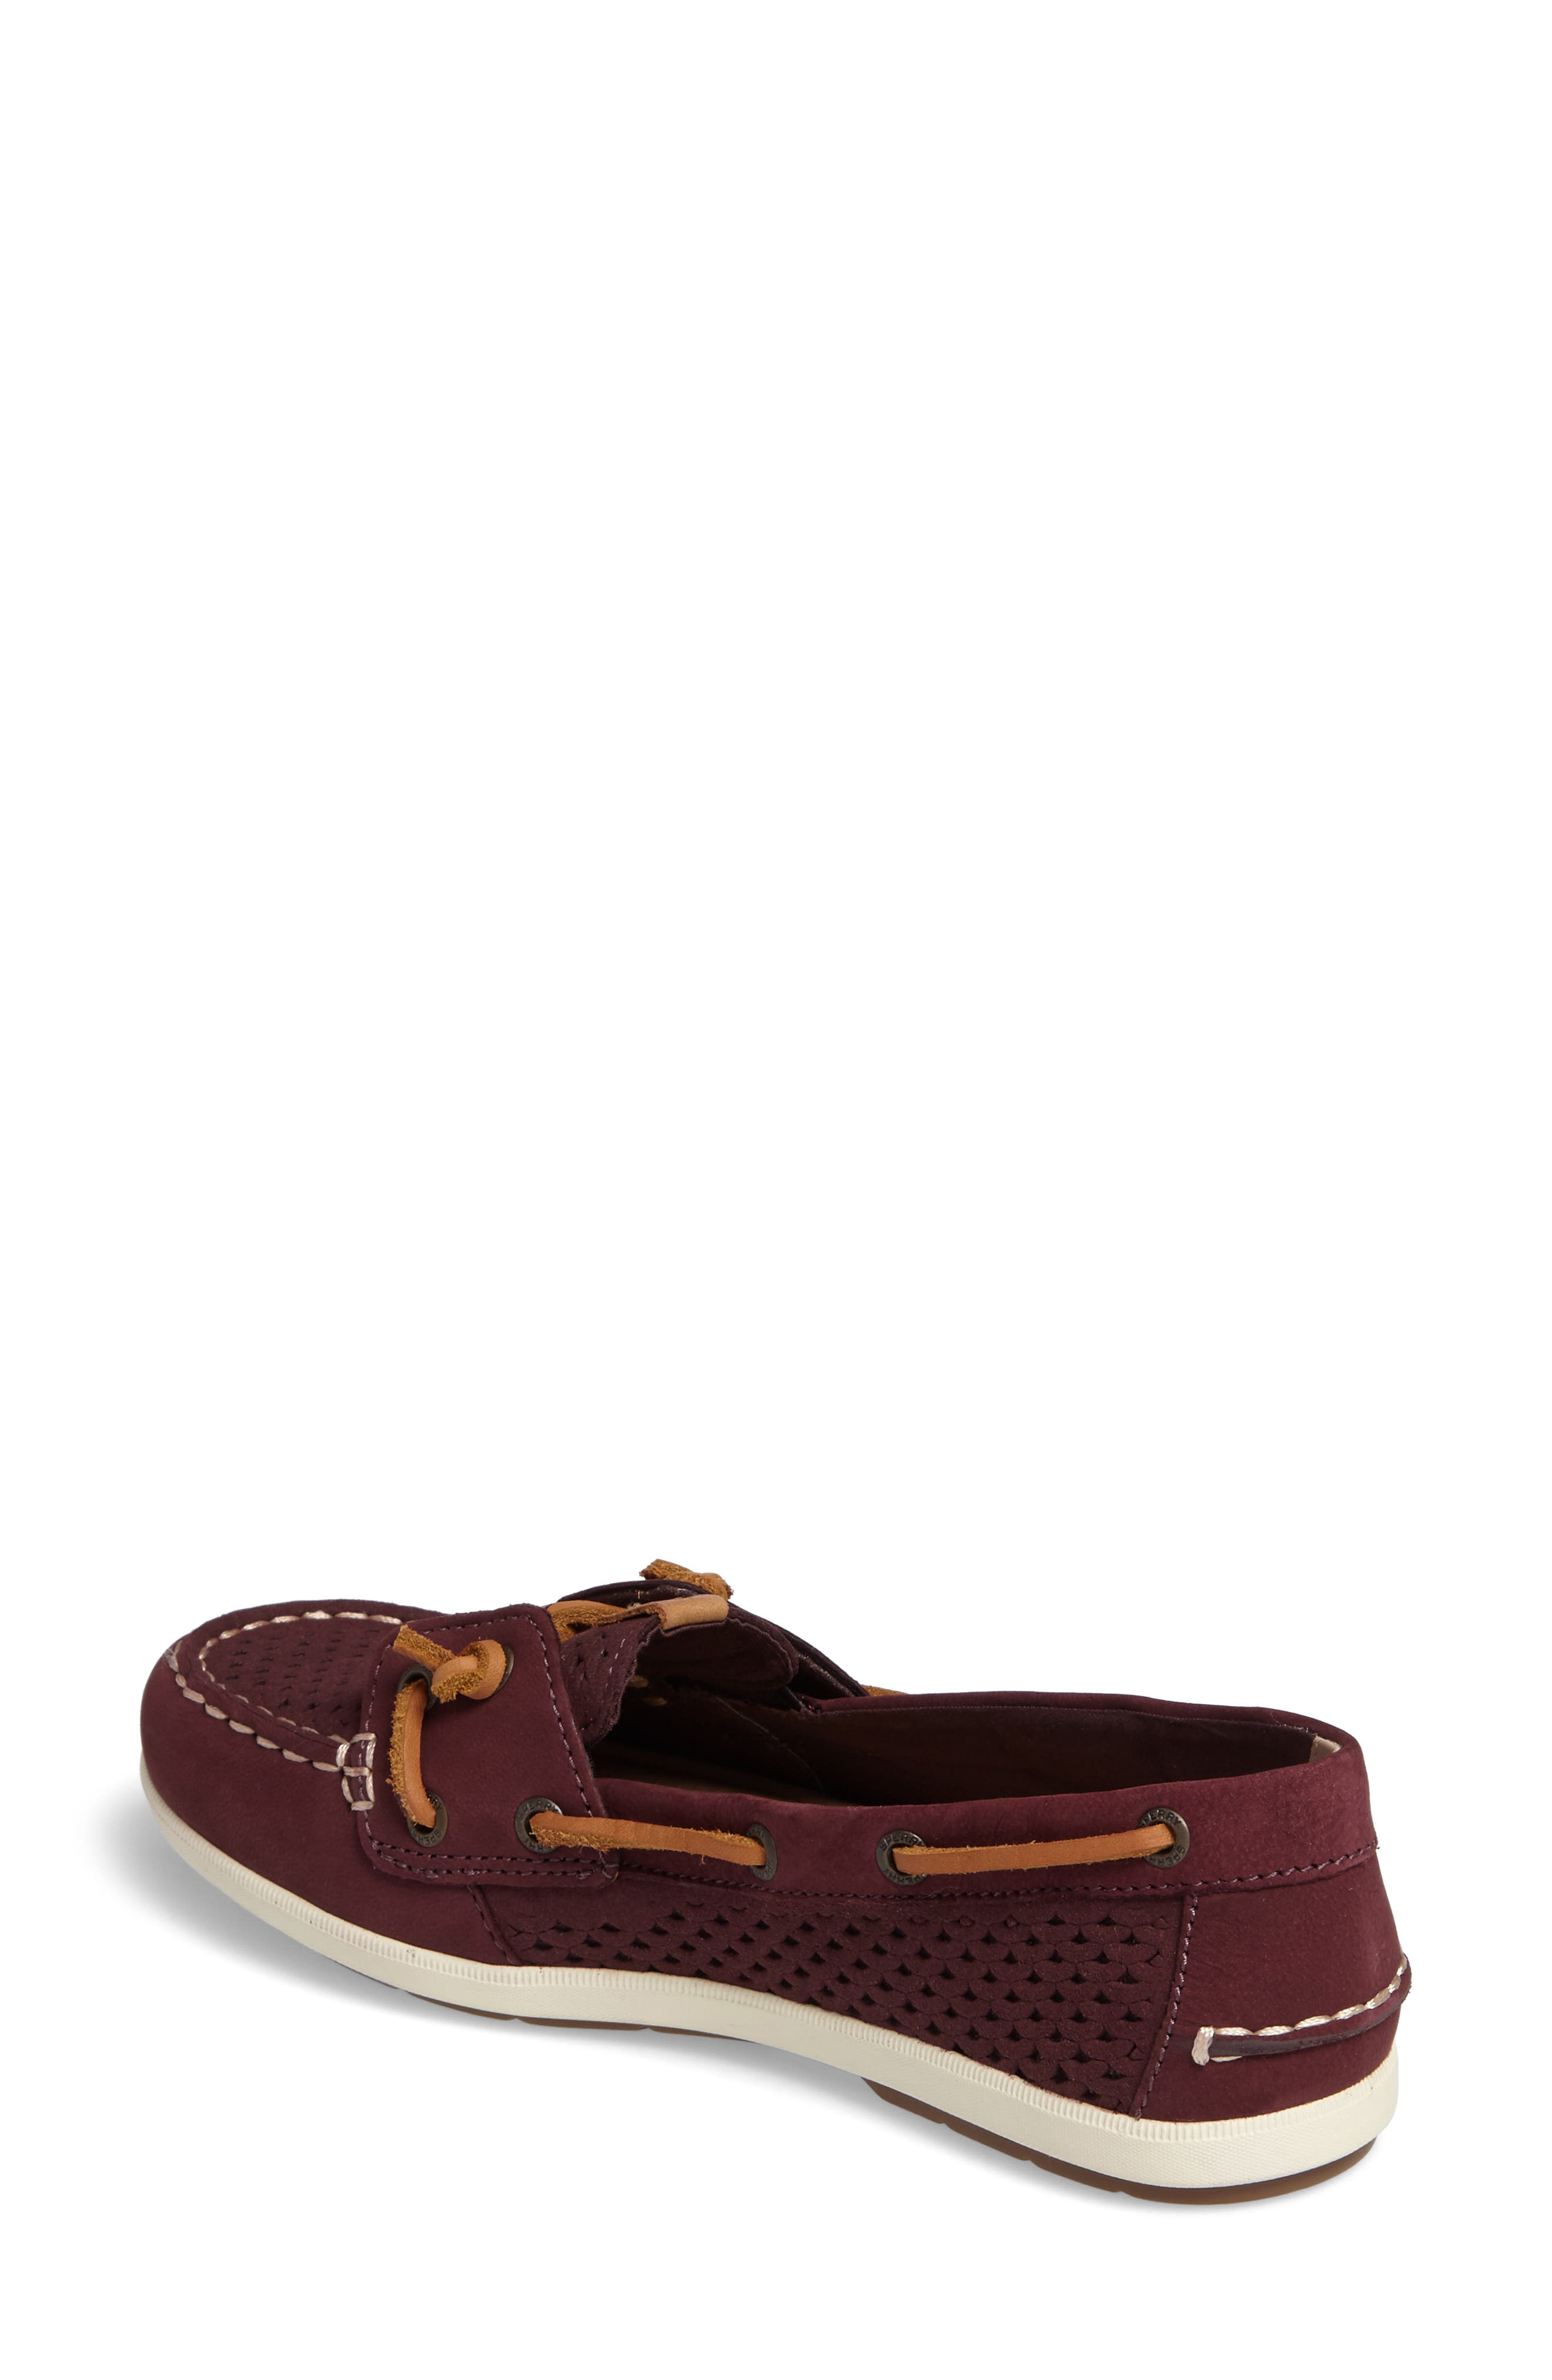 Coil Ivy Perforated Boat Shoe,                             Alternate thumbnail 2, color,